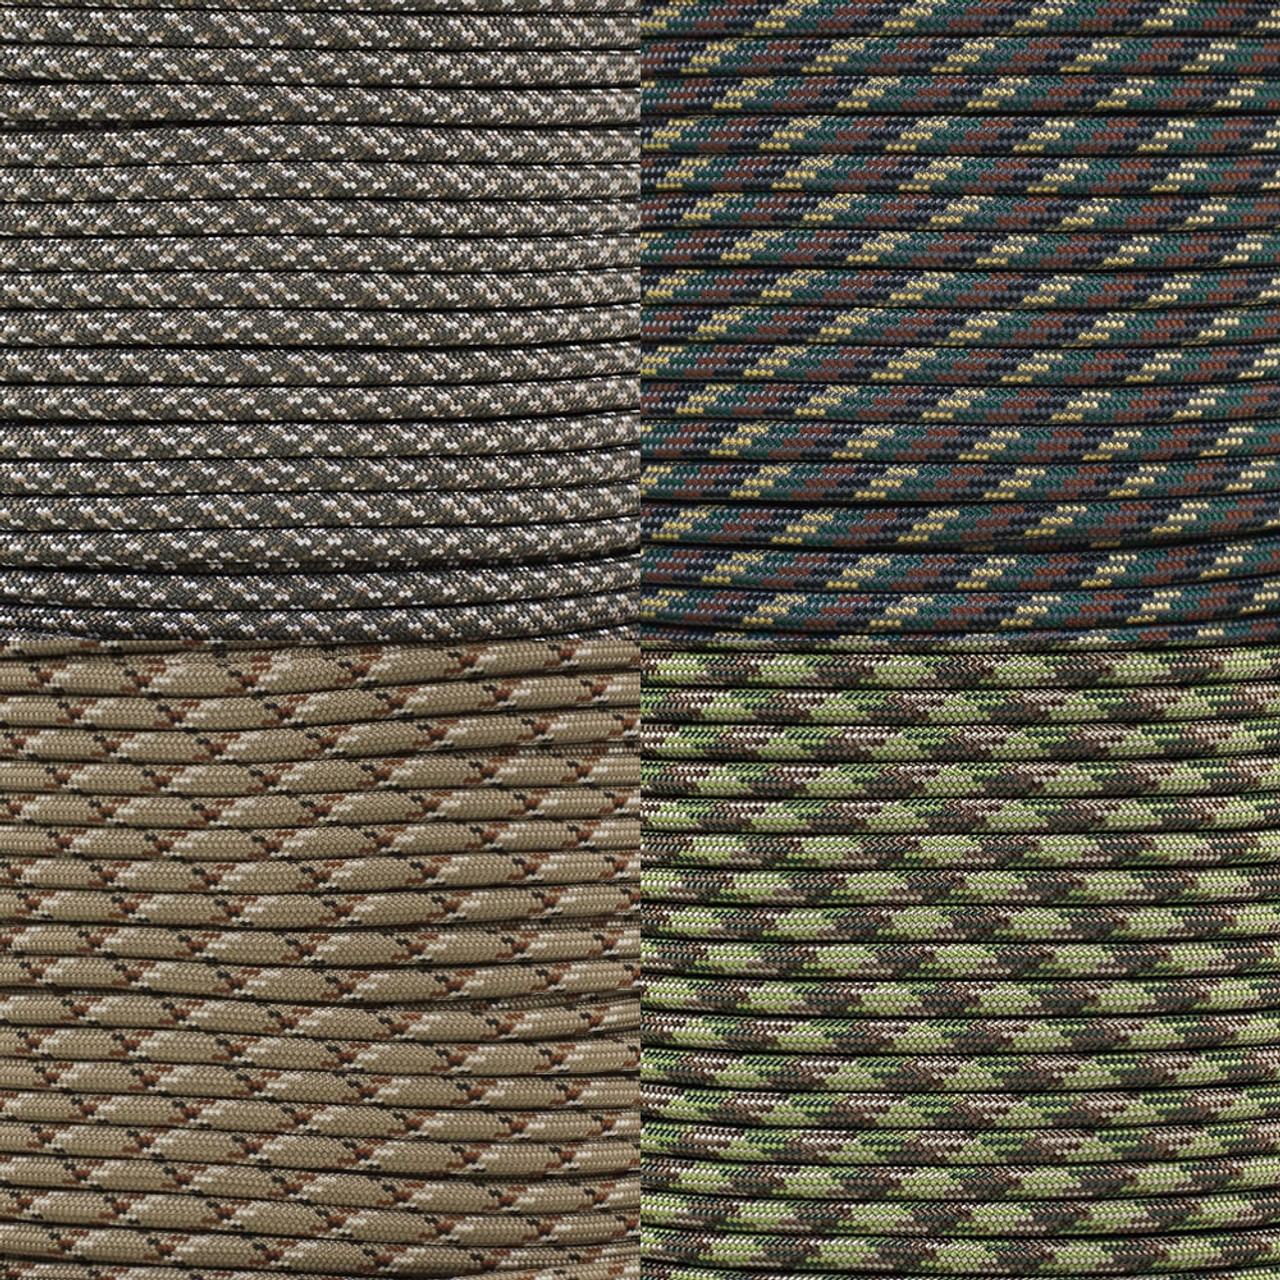 5//16 Inch Paramax Paracord 25 Available in Lengths of 10 PARACORD PLANET 750 Paracord and 1//4 Inch 50 or 100